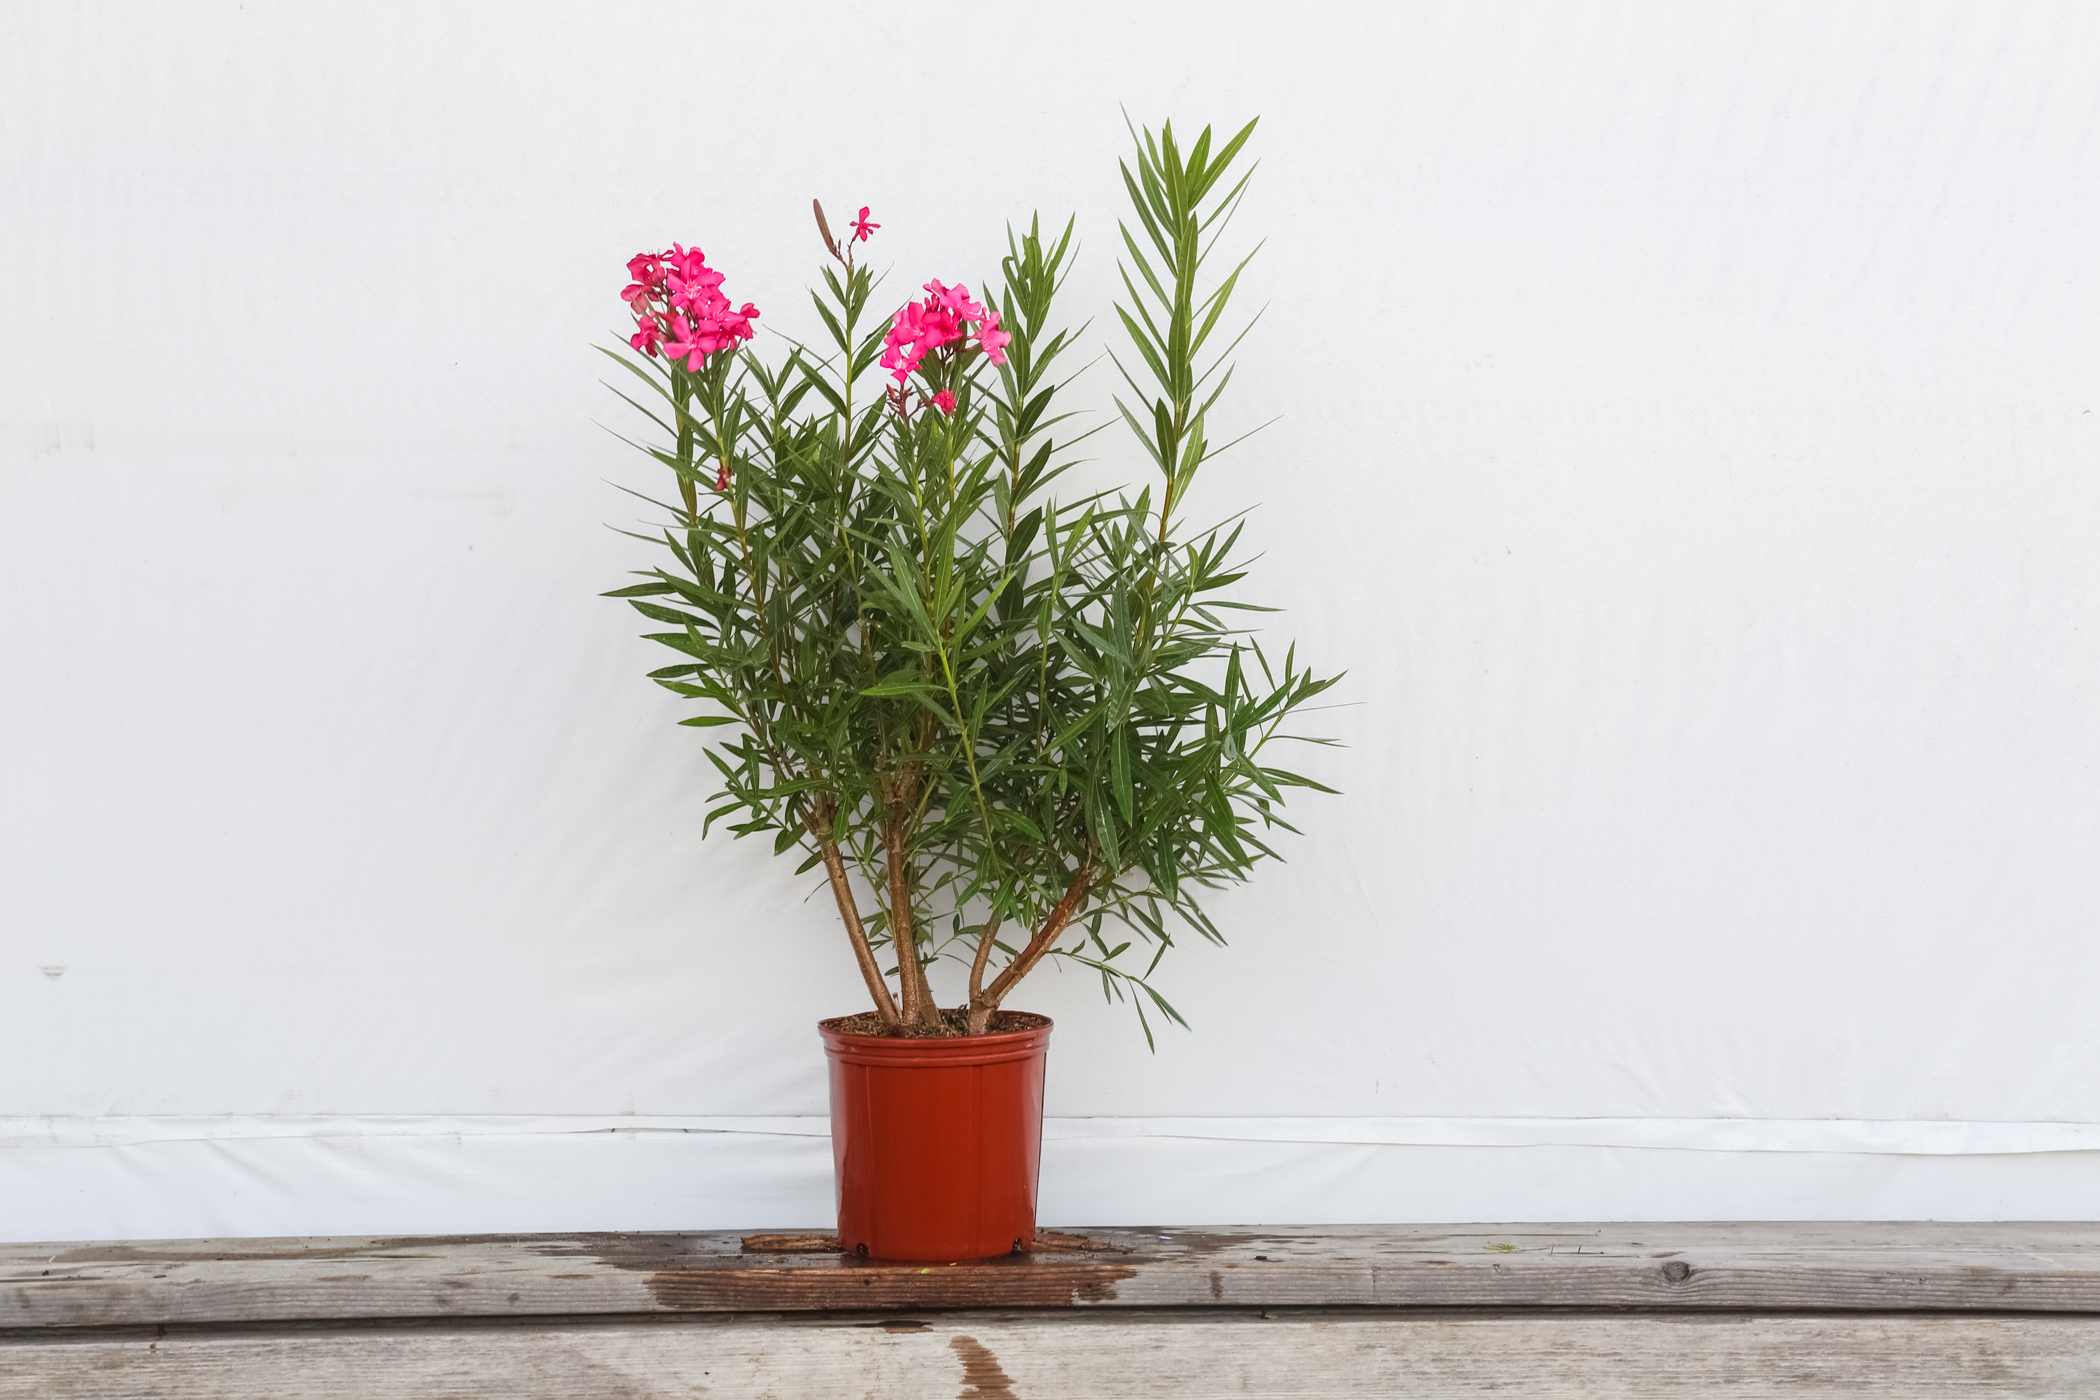 Oleander Bush Calypso Pink 3 Gallon